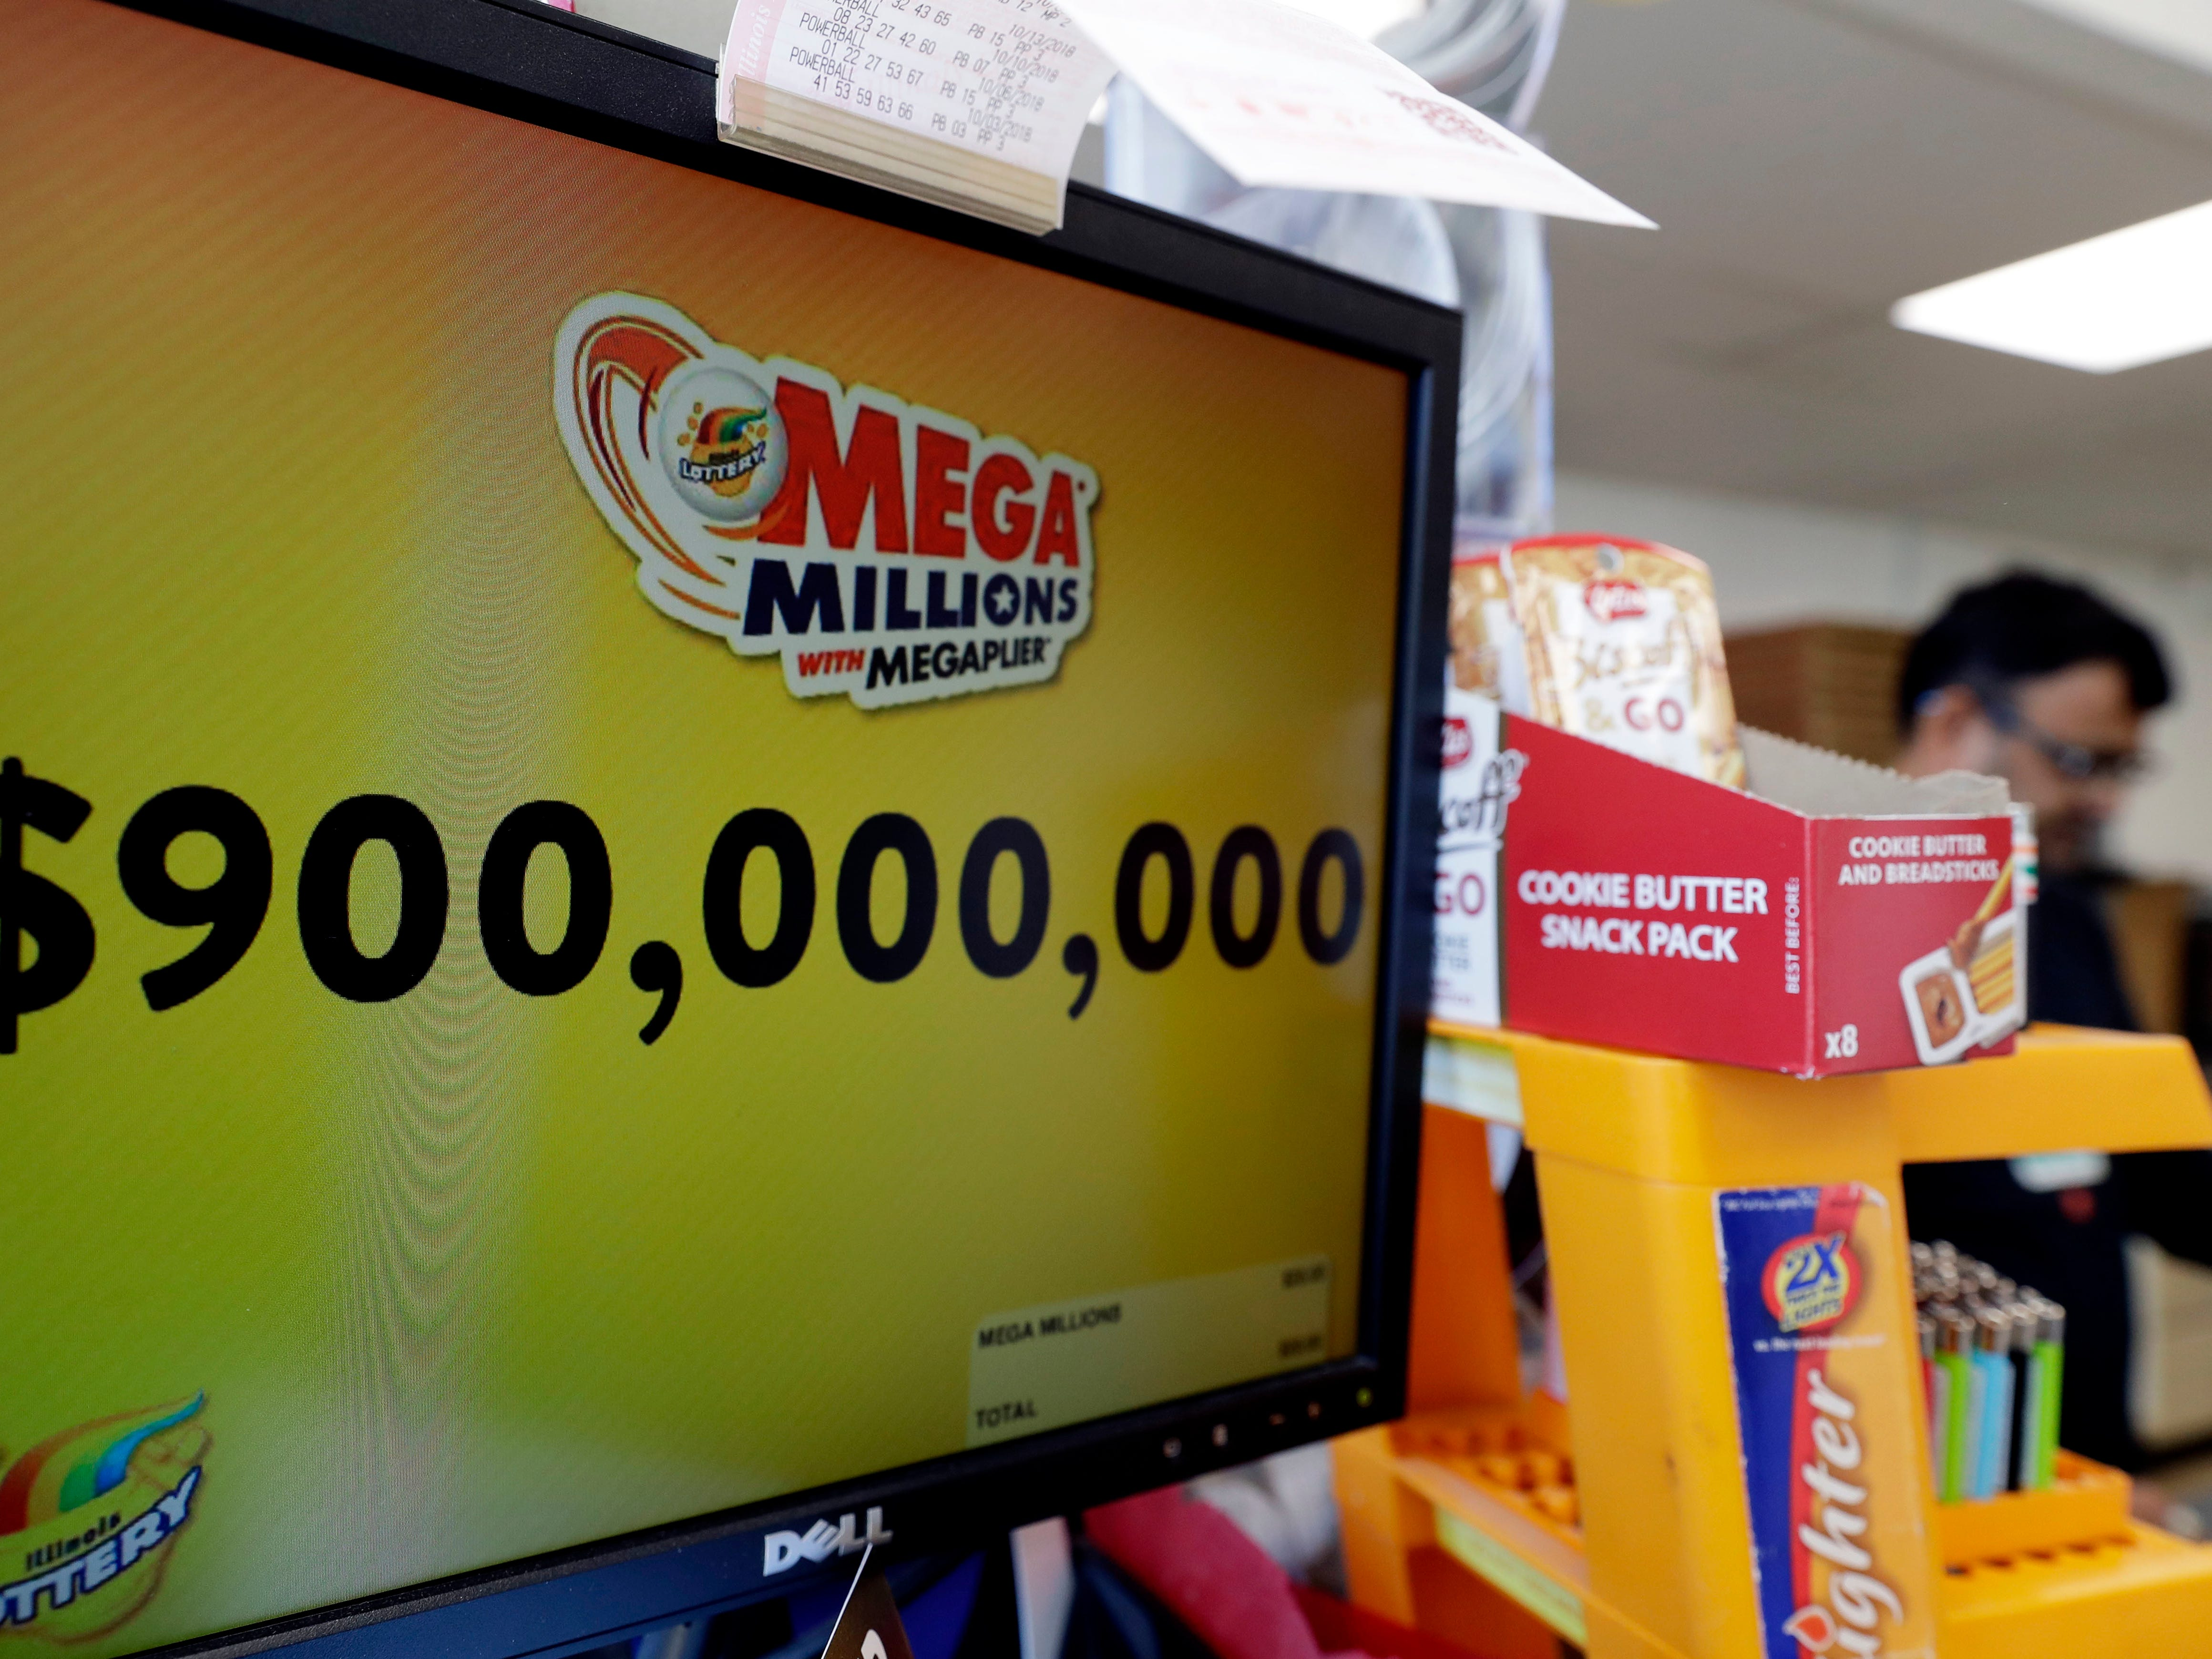 The Mega Millions jackpot is displayed at a convenience store Wednesday, Oct. 17, 2018, in Chicago.